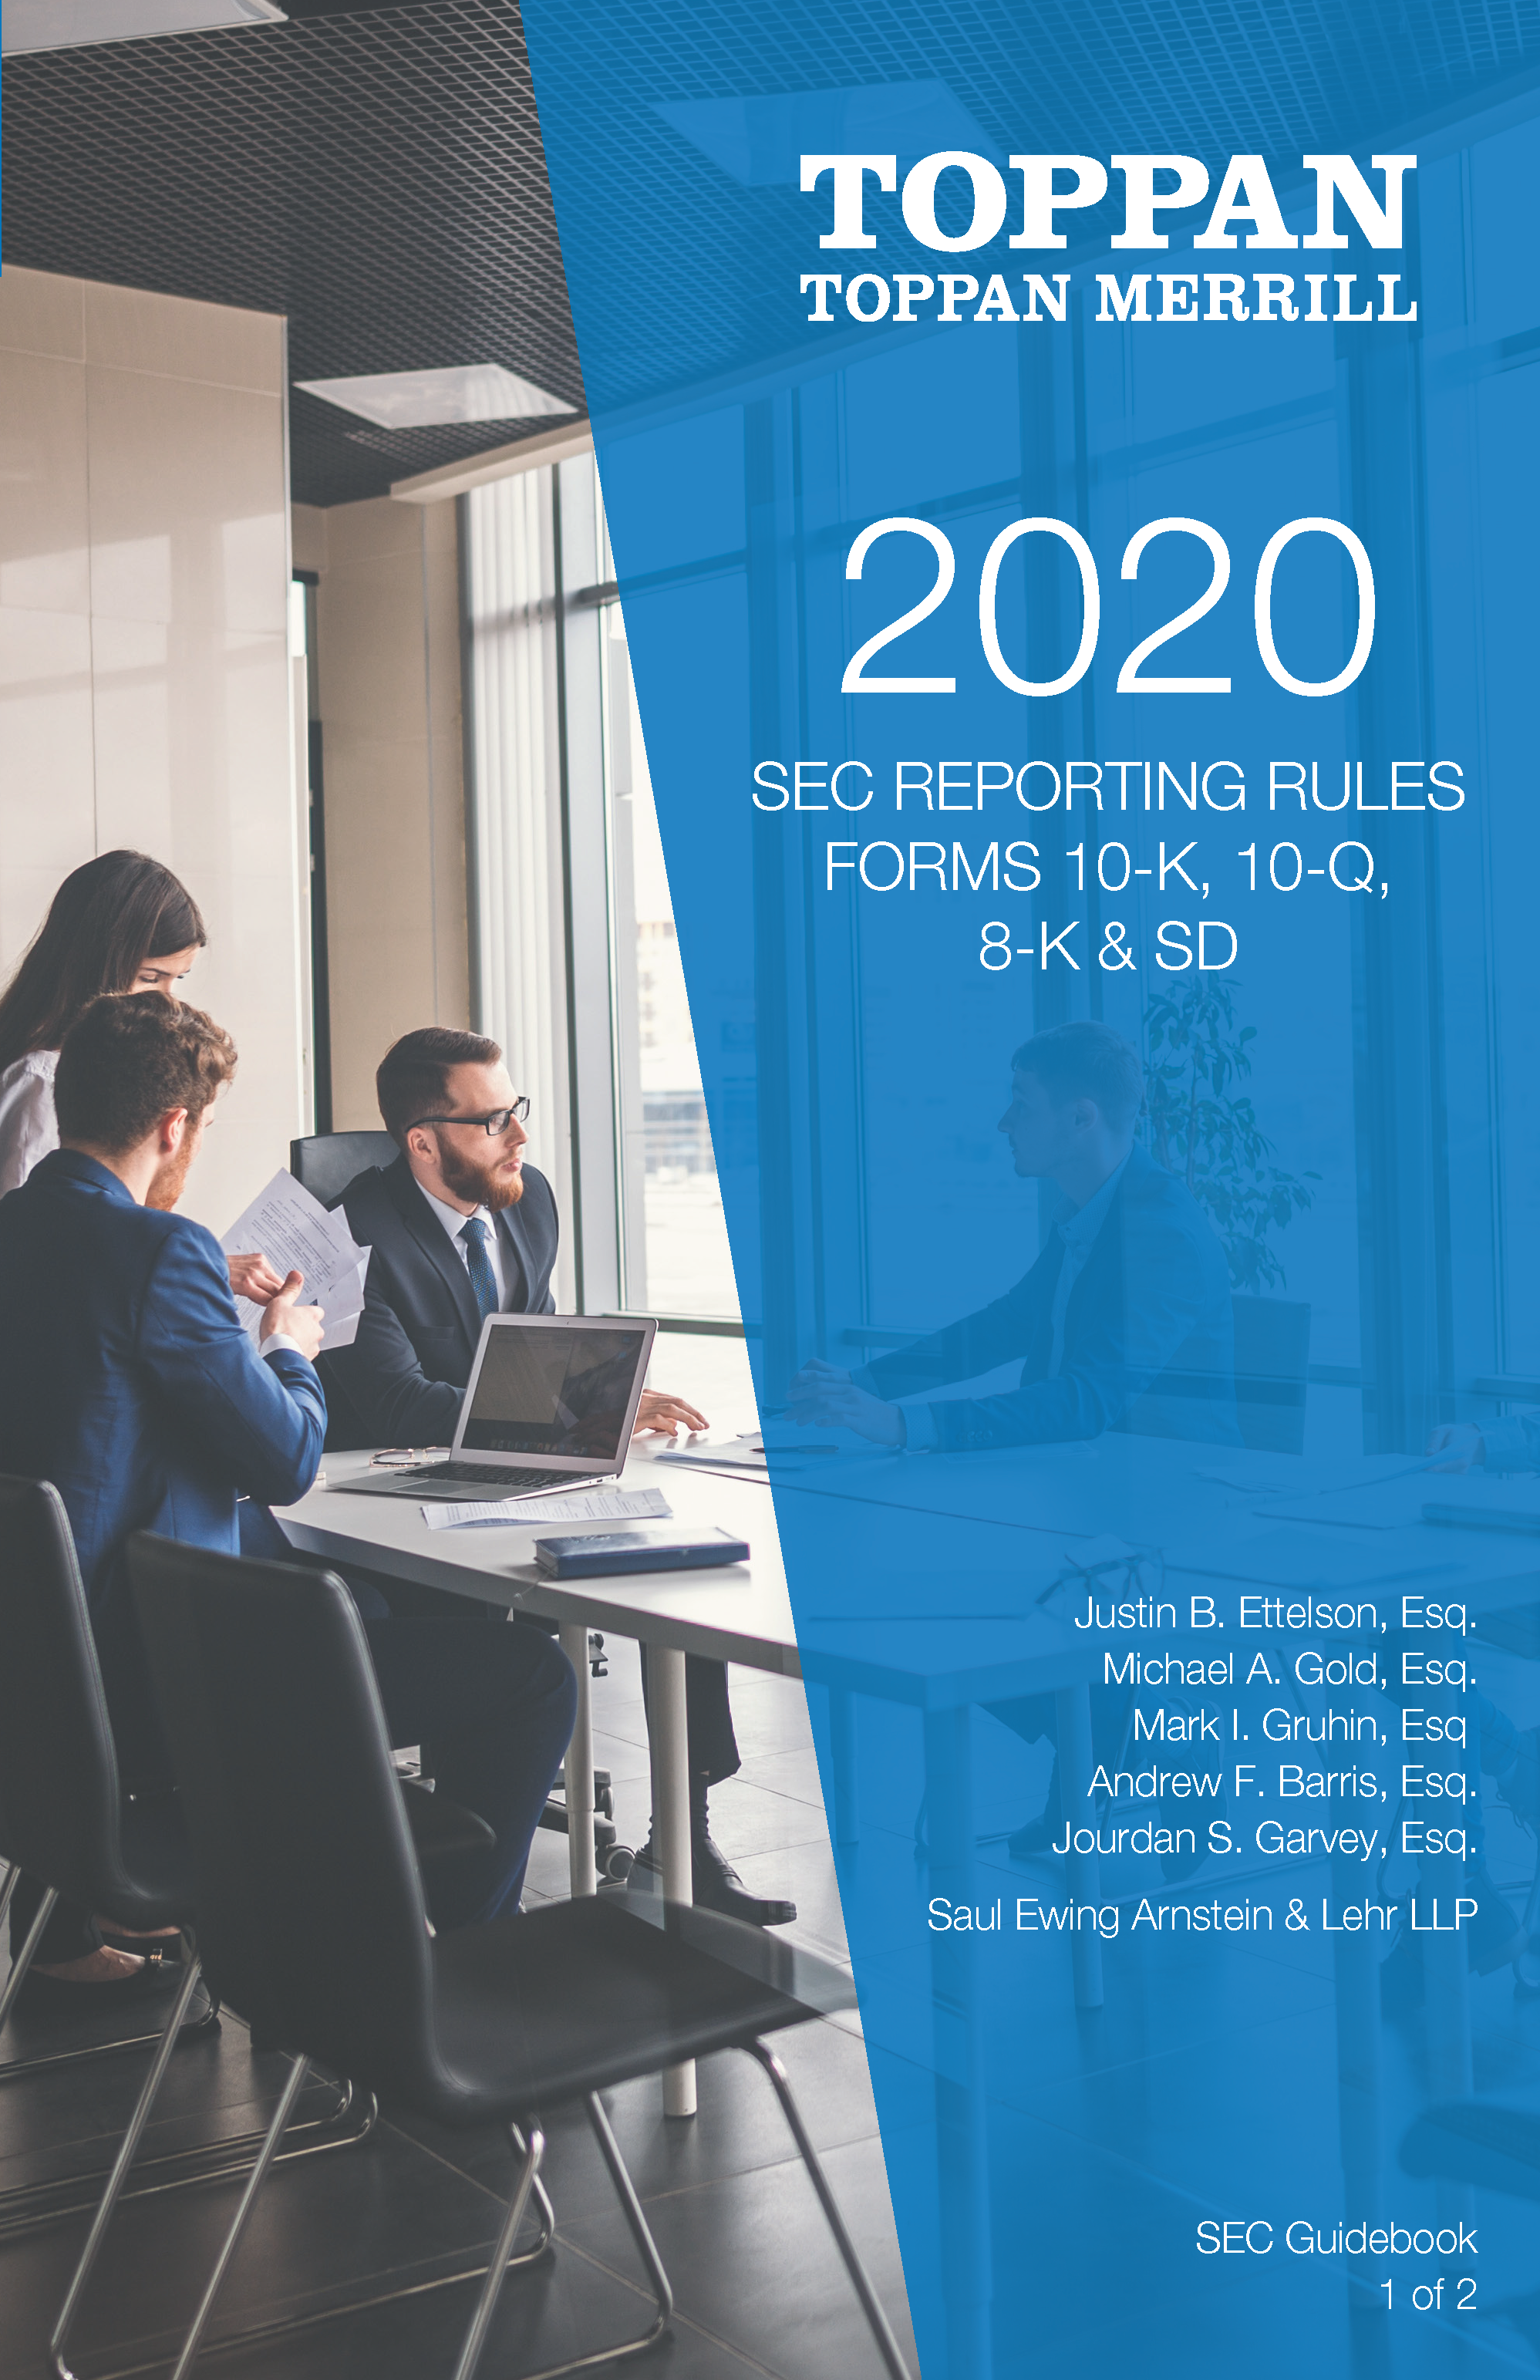 2020 SEC Reporting Rules Forms 10-K, 10-Q, 8-K, SD_Page_001